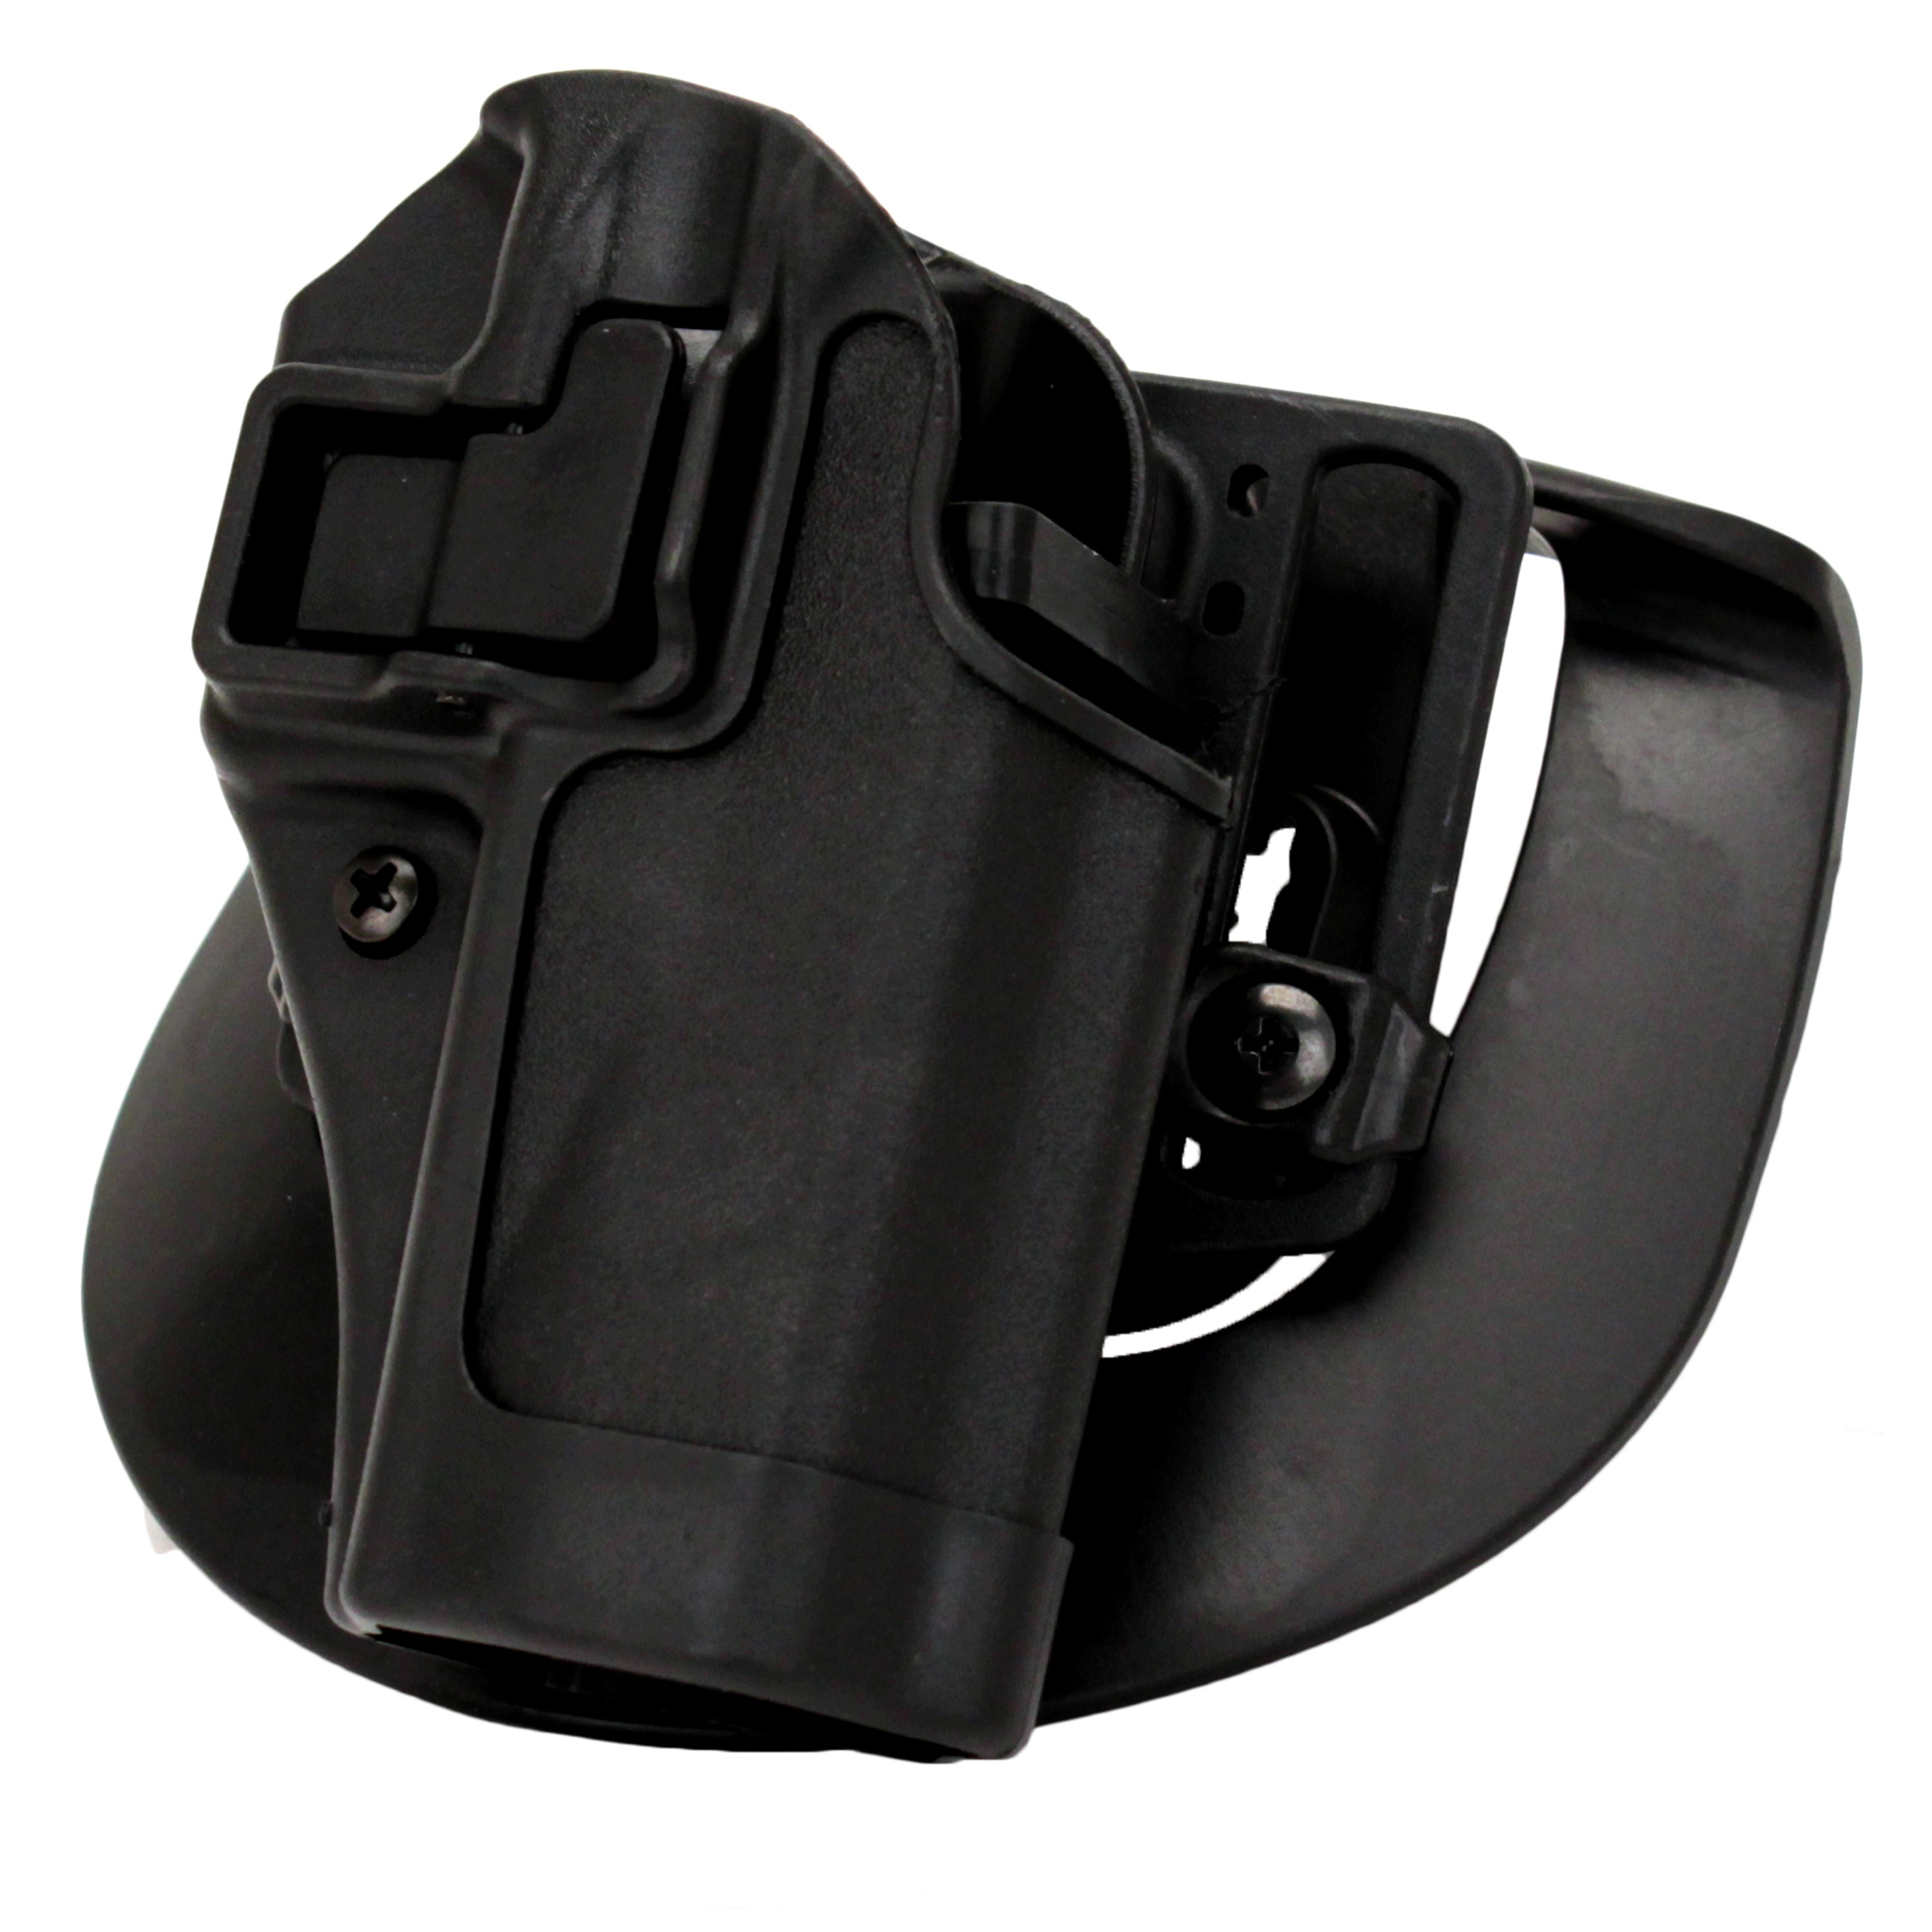 Blackhawk SERPA CQC Concealment Belt/Paddle Holster